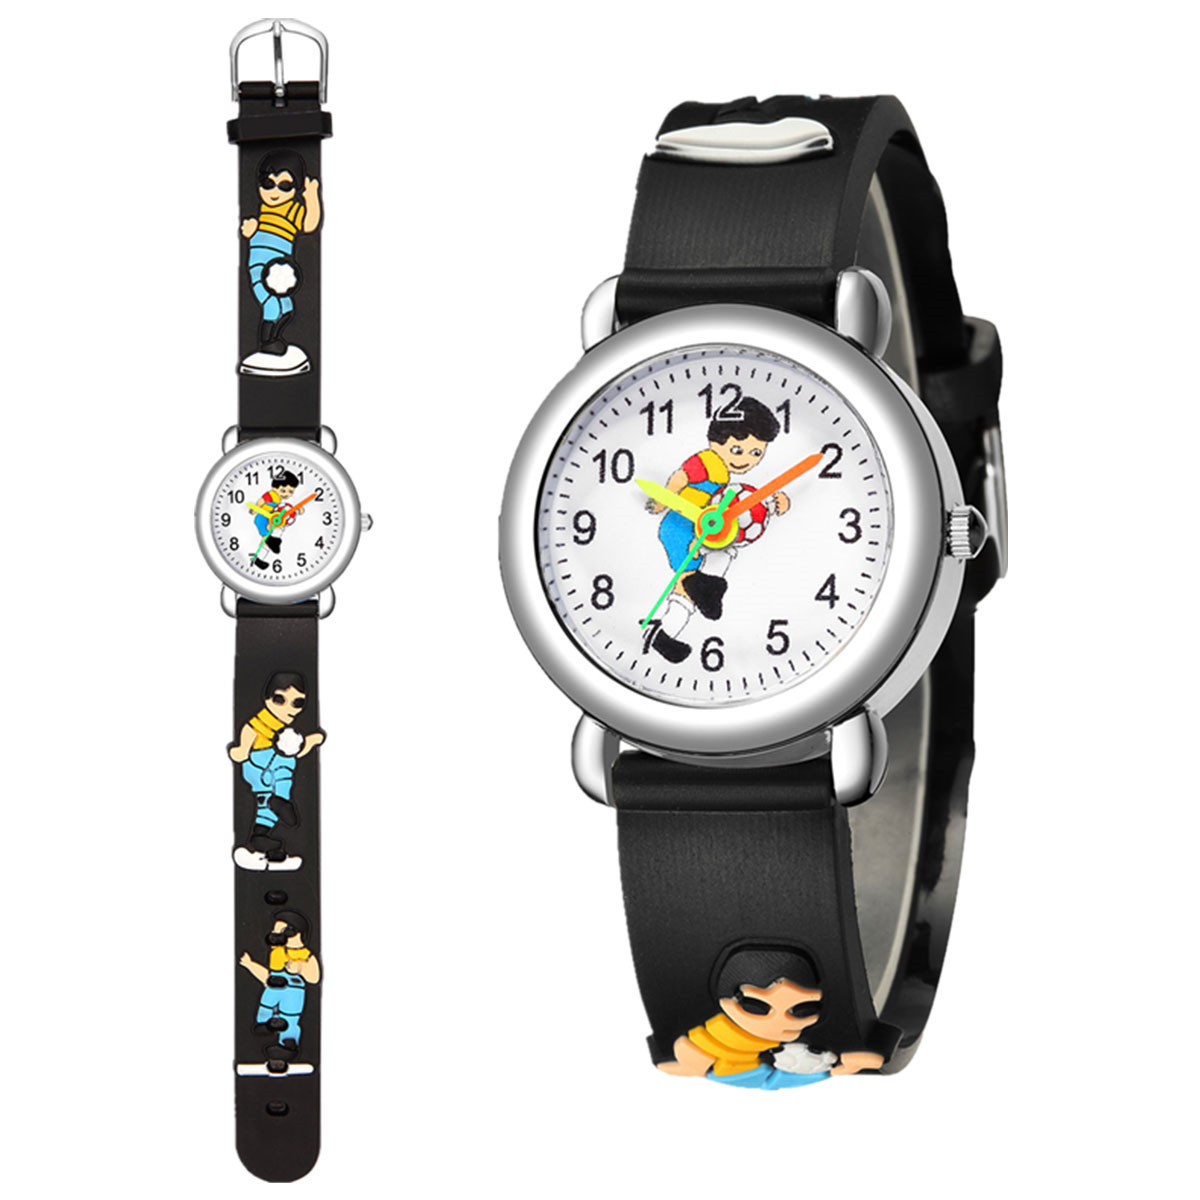 Cute Football Pattern Plastic Band Sports Watch Boy Watch Wholesale NHSY202005